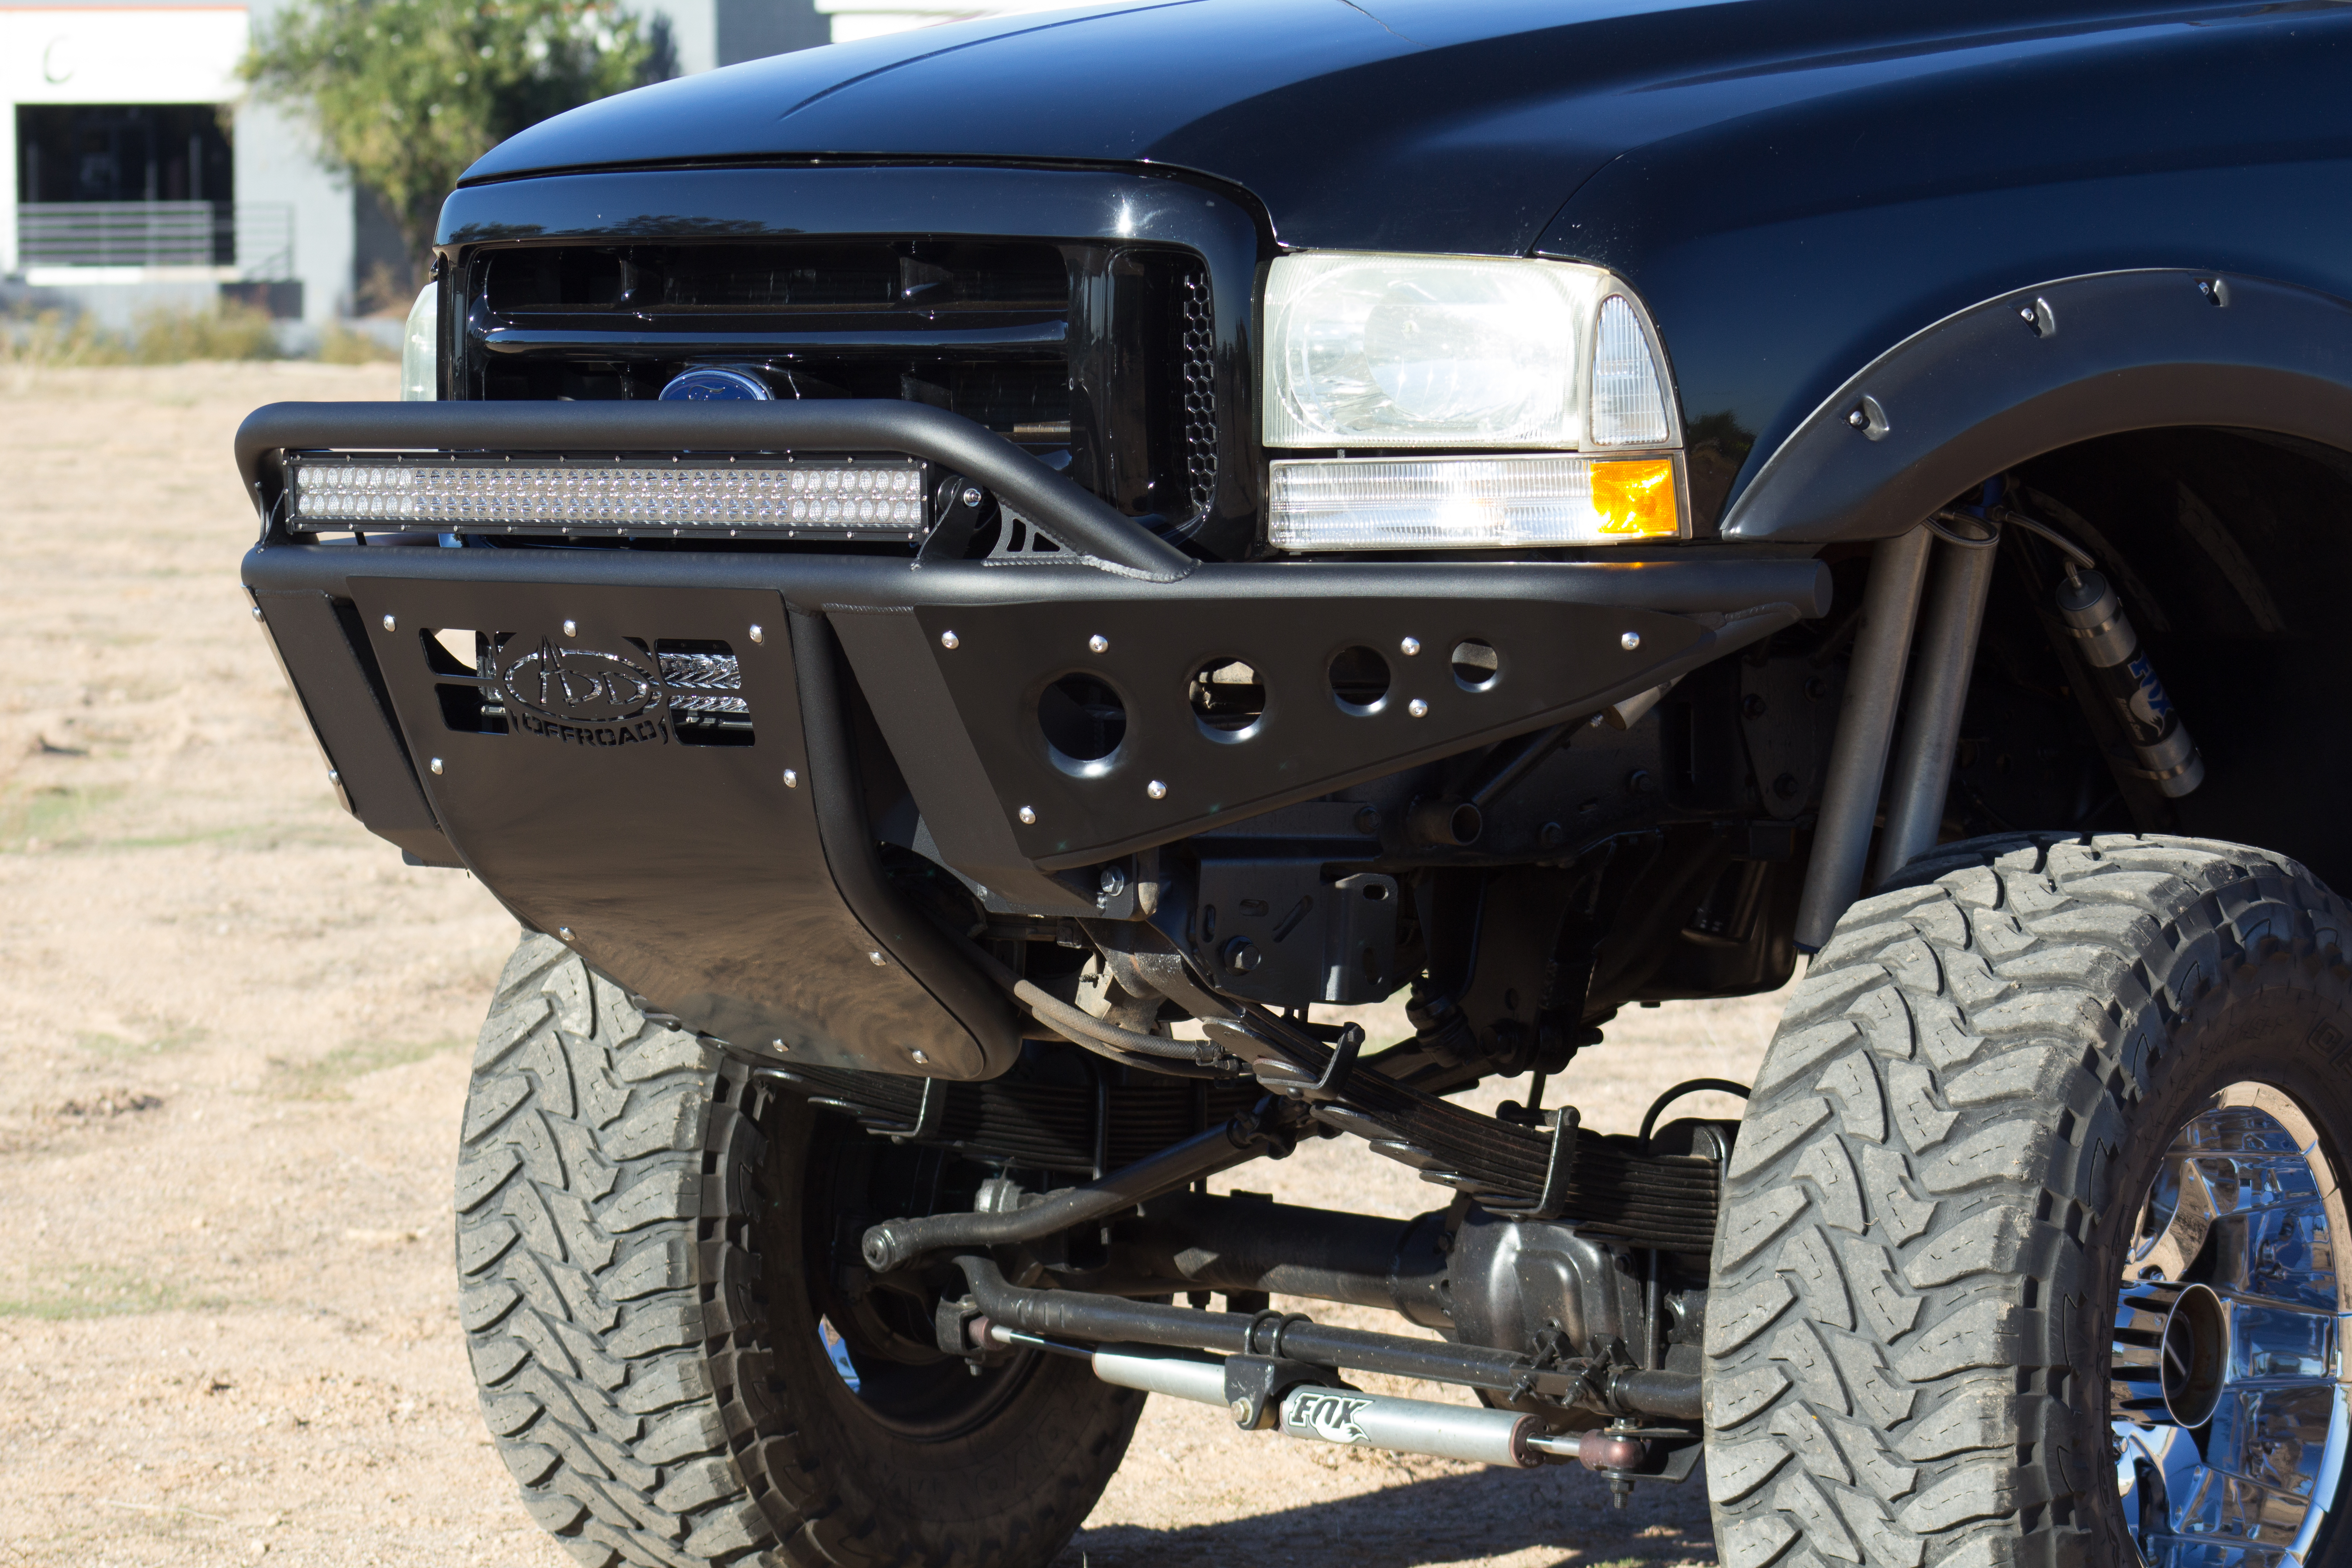 1999 - 2007 Ford Excursion Standard Front Bumper with Stealth Panels and 40 light bar mounts in Hammer Black with Satin Black panels